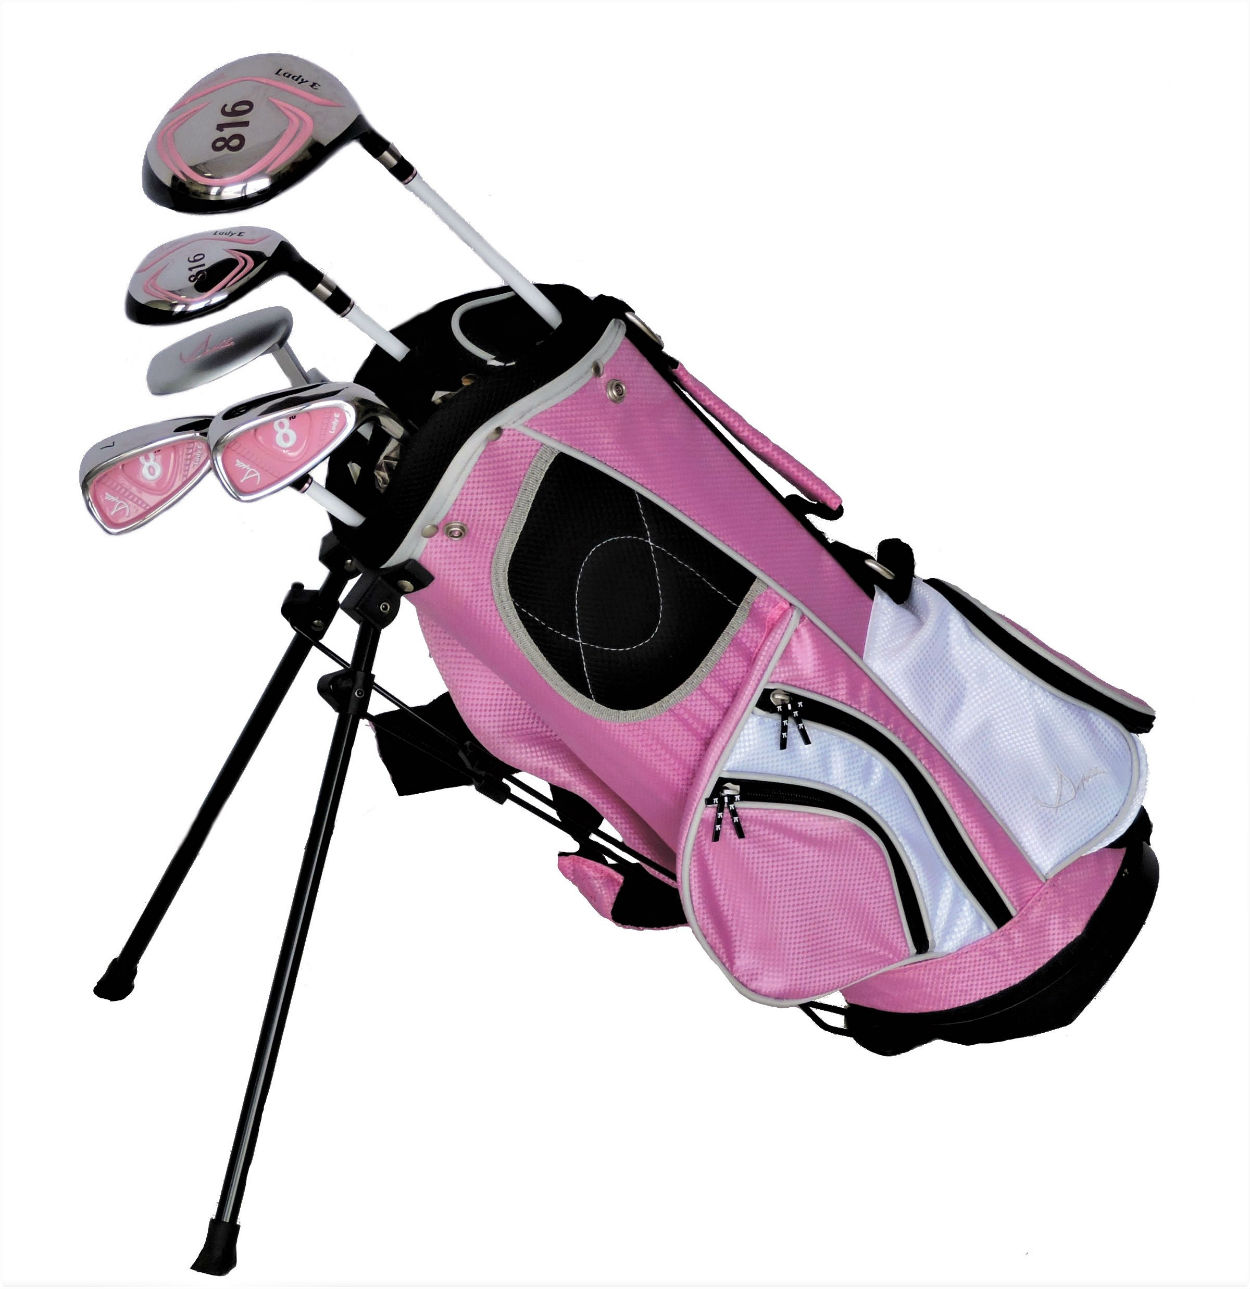 Sephlin - Lady E Girls Pink Golf Set *5* Pcs &  Bag  Ages 3-6 RH